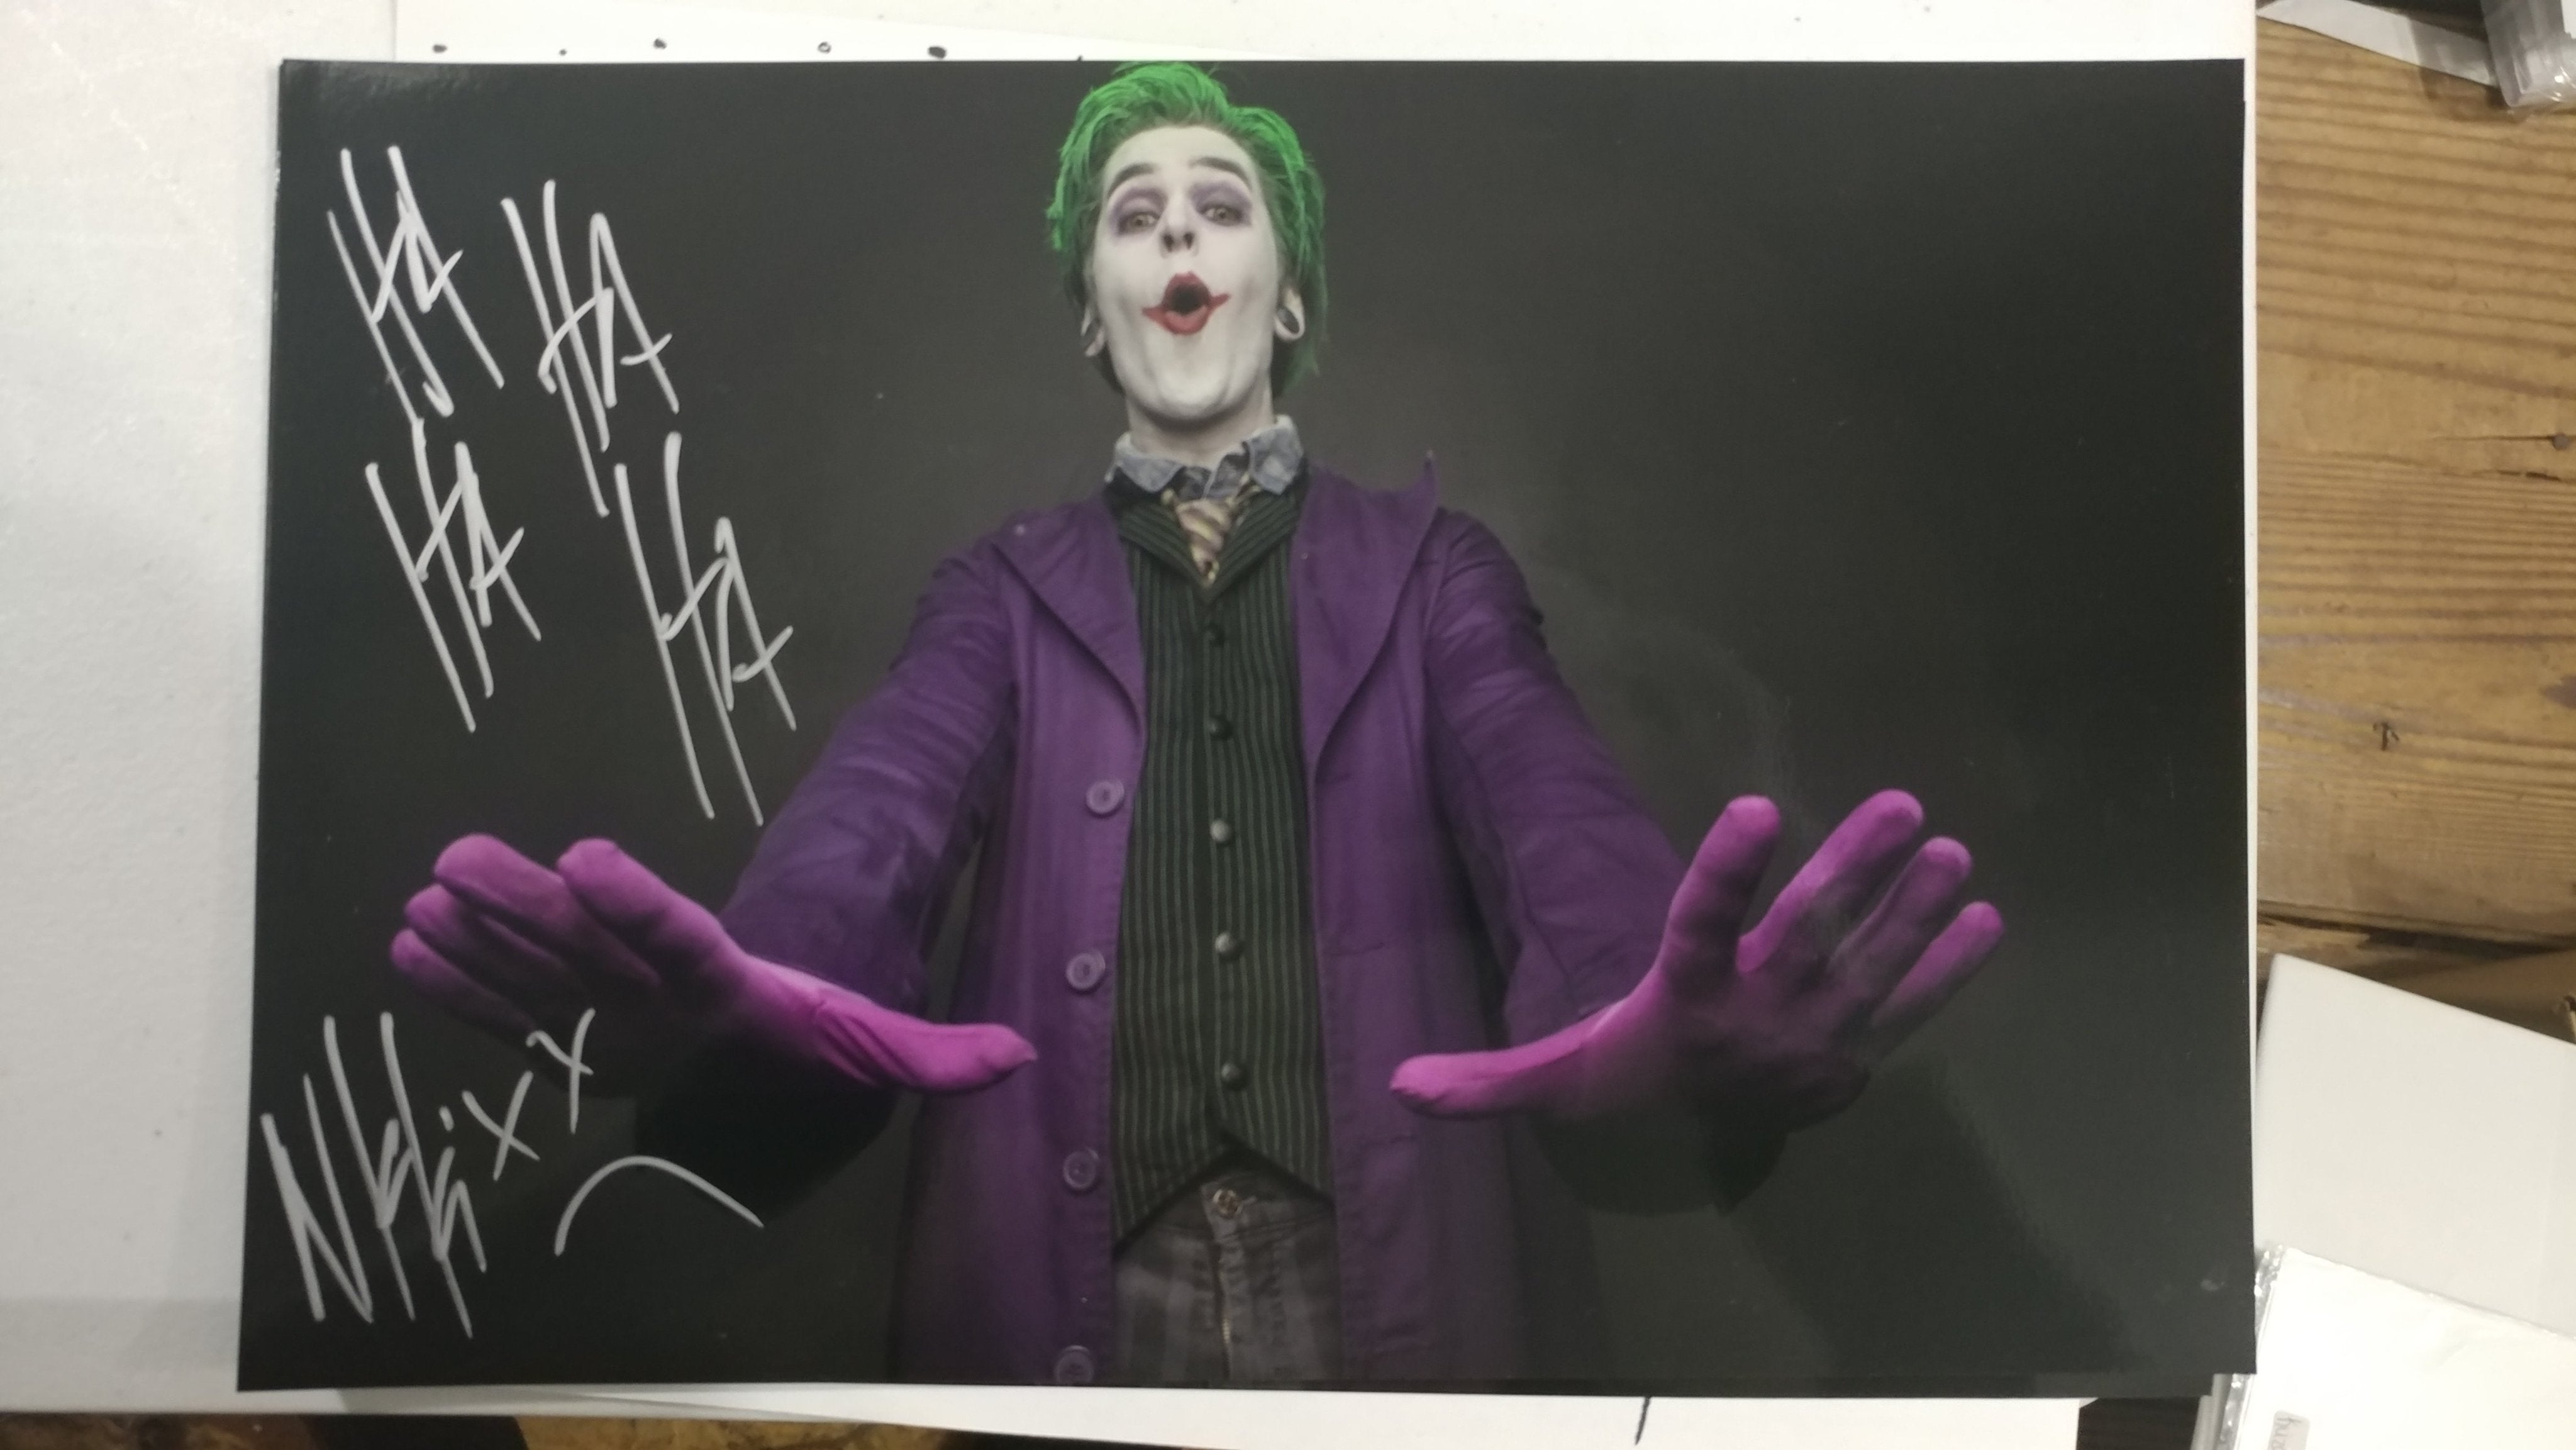 Nikki Misery - Joker - Whoa - Signed Limited Edition Metallic 8x12